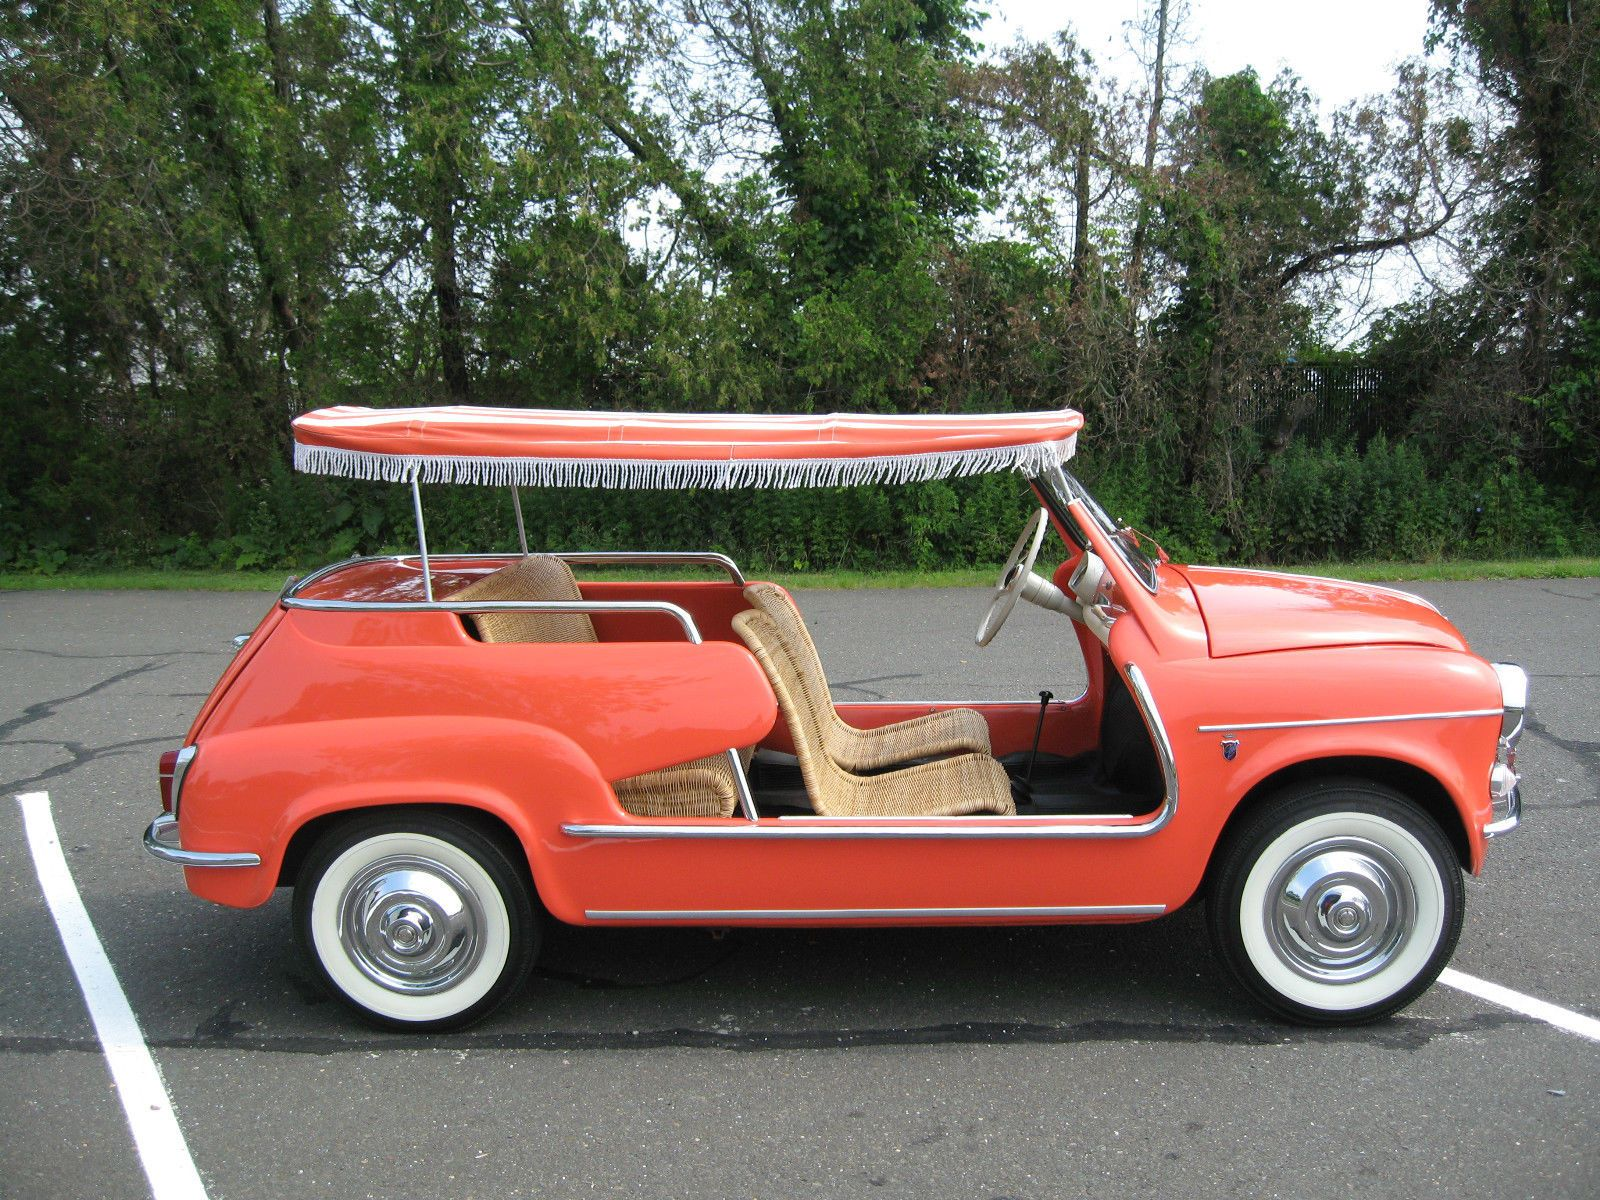 r car daily new sale record fiat mini sells hemmings setting jolly blog price for beach major